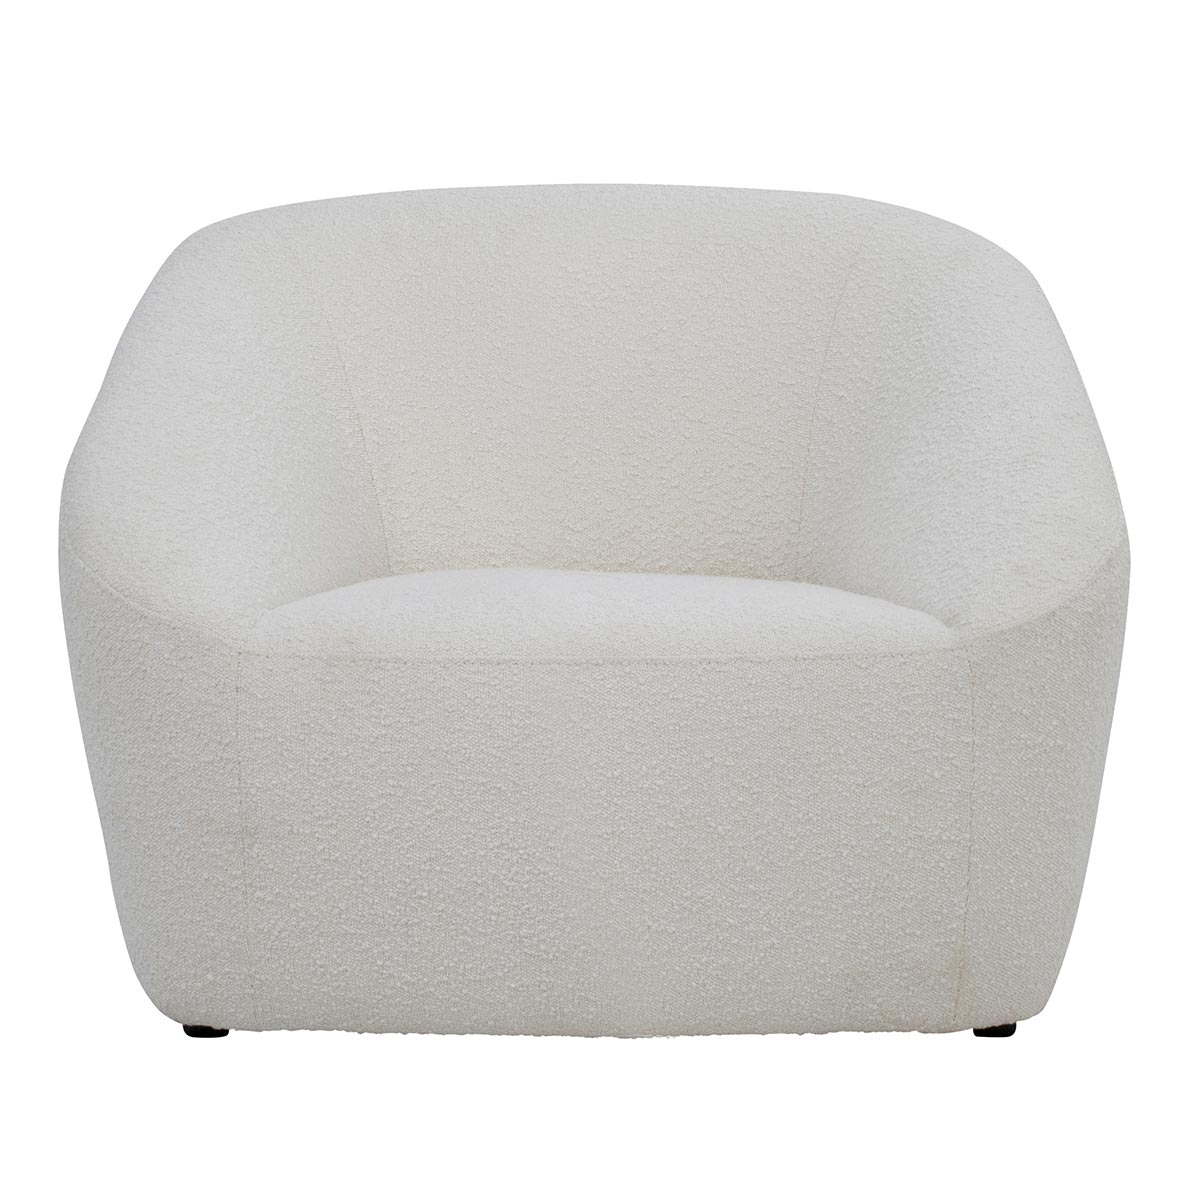 TULIP ARMCHAIR in dove cream by OzDesignFurniture, a Sofas for sale on Style Sourcebook